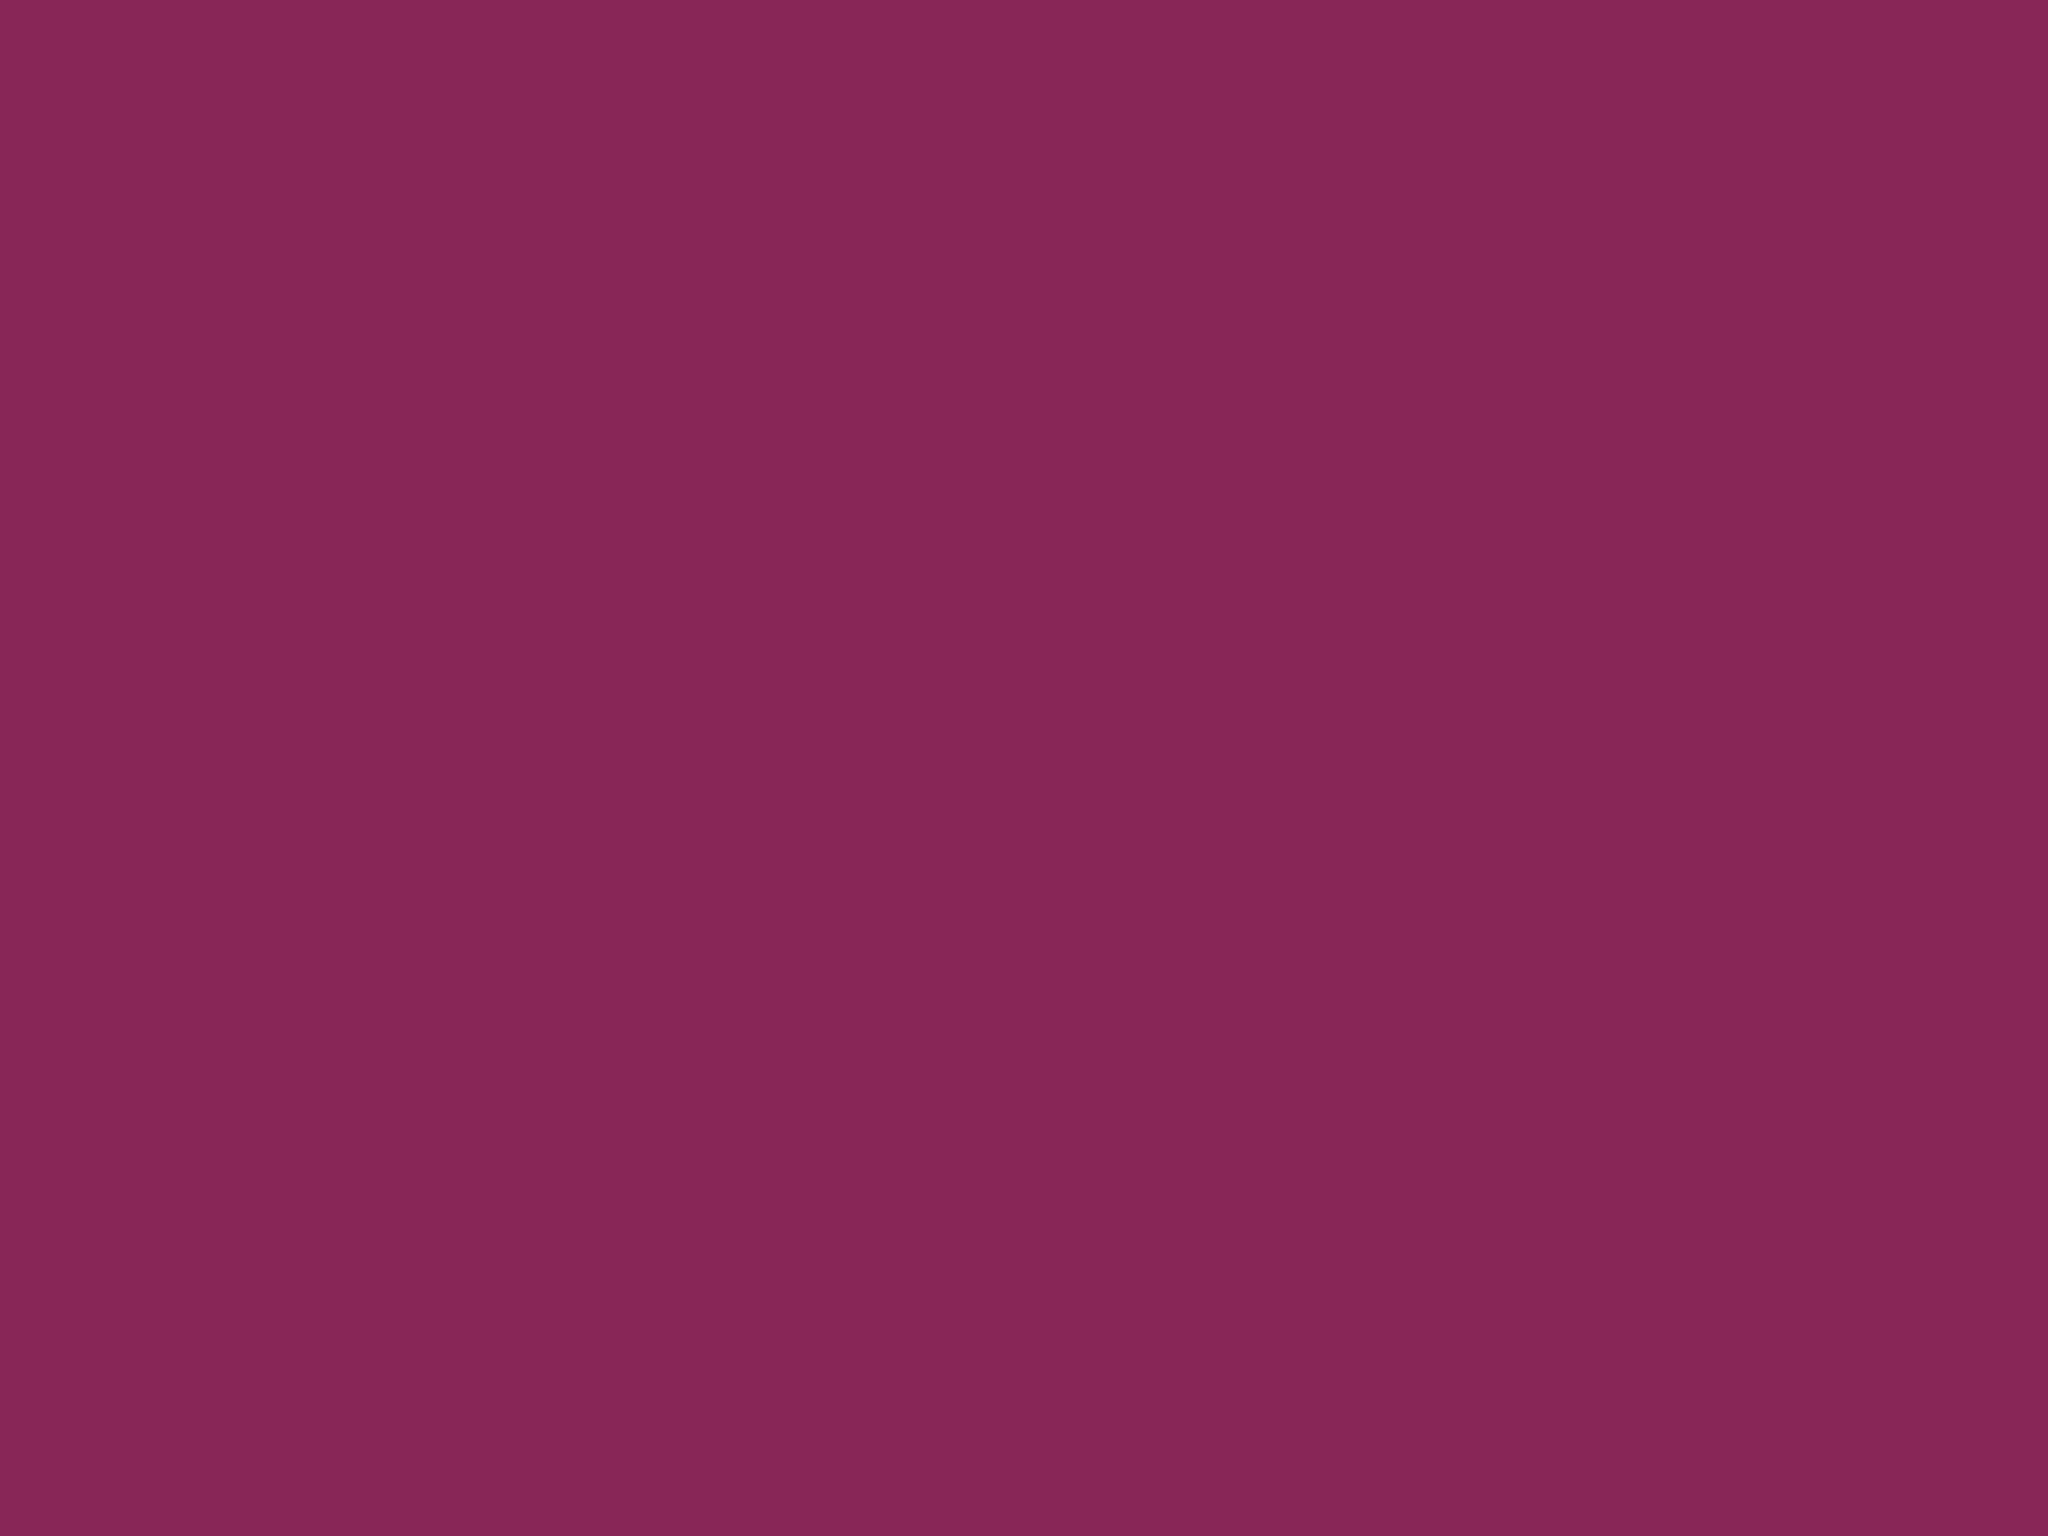 2048x1536 Dark Raspberry Solid Color Background